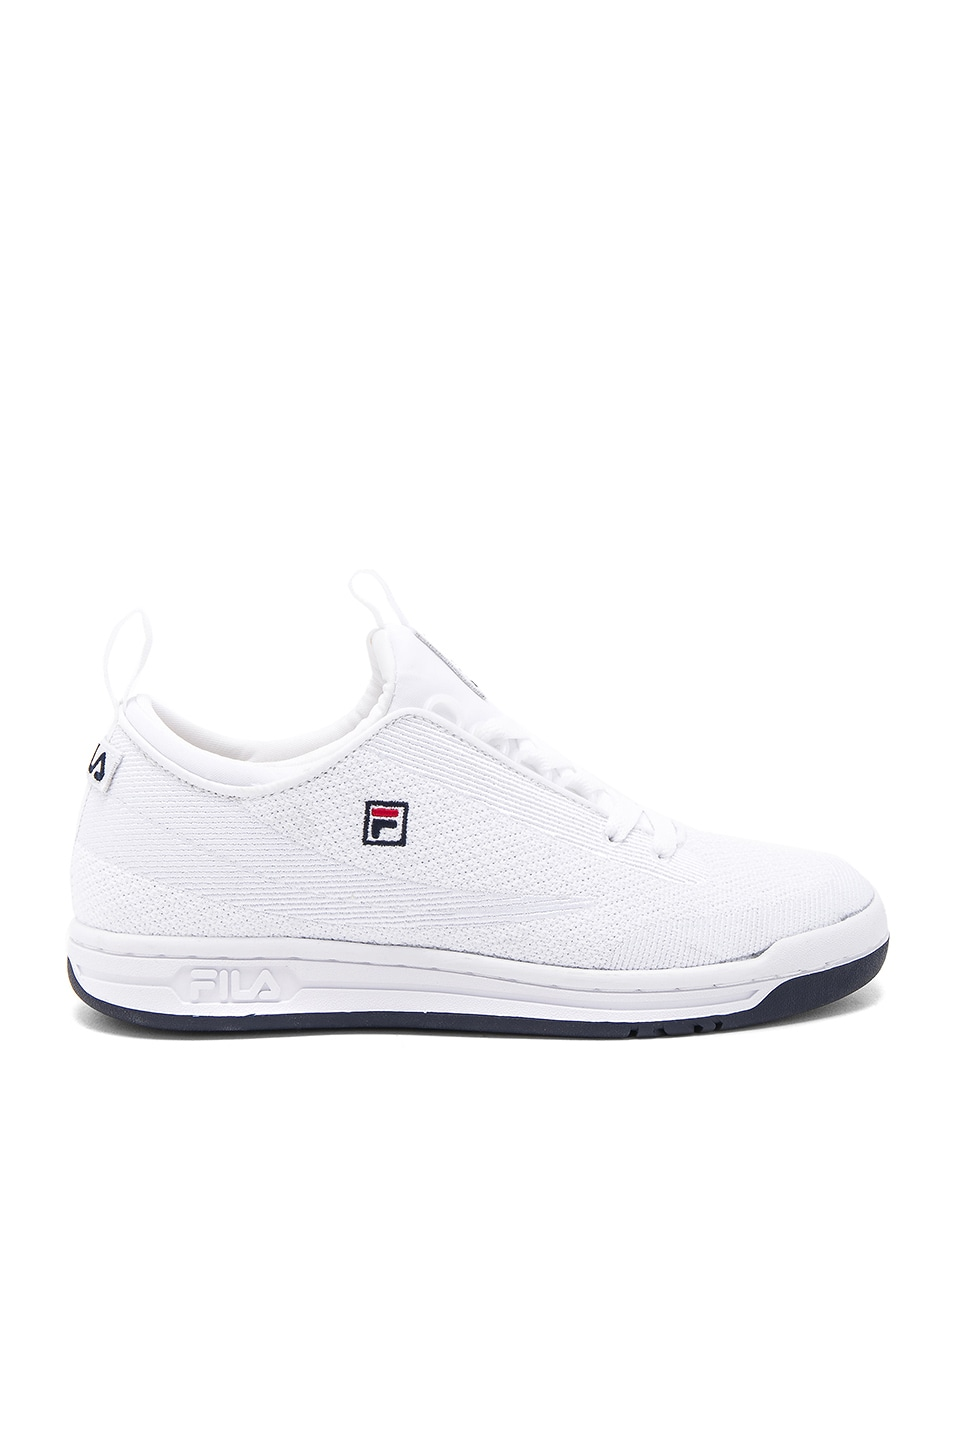 Original Tennis 2.0 SW by Fila